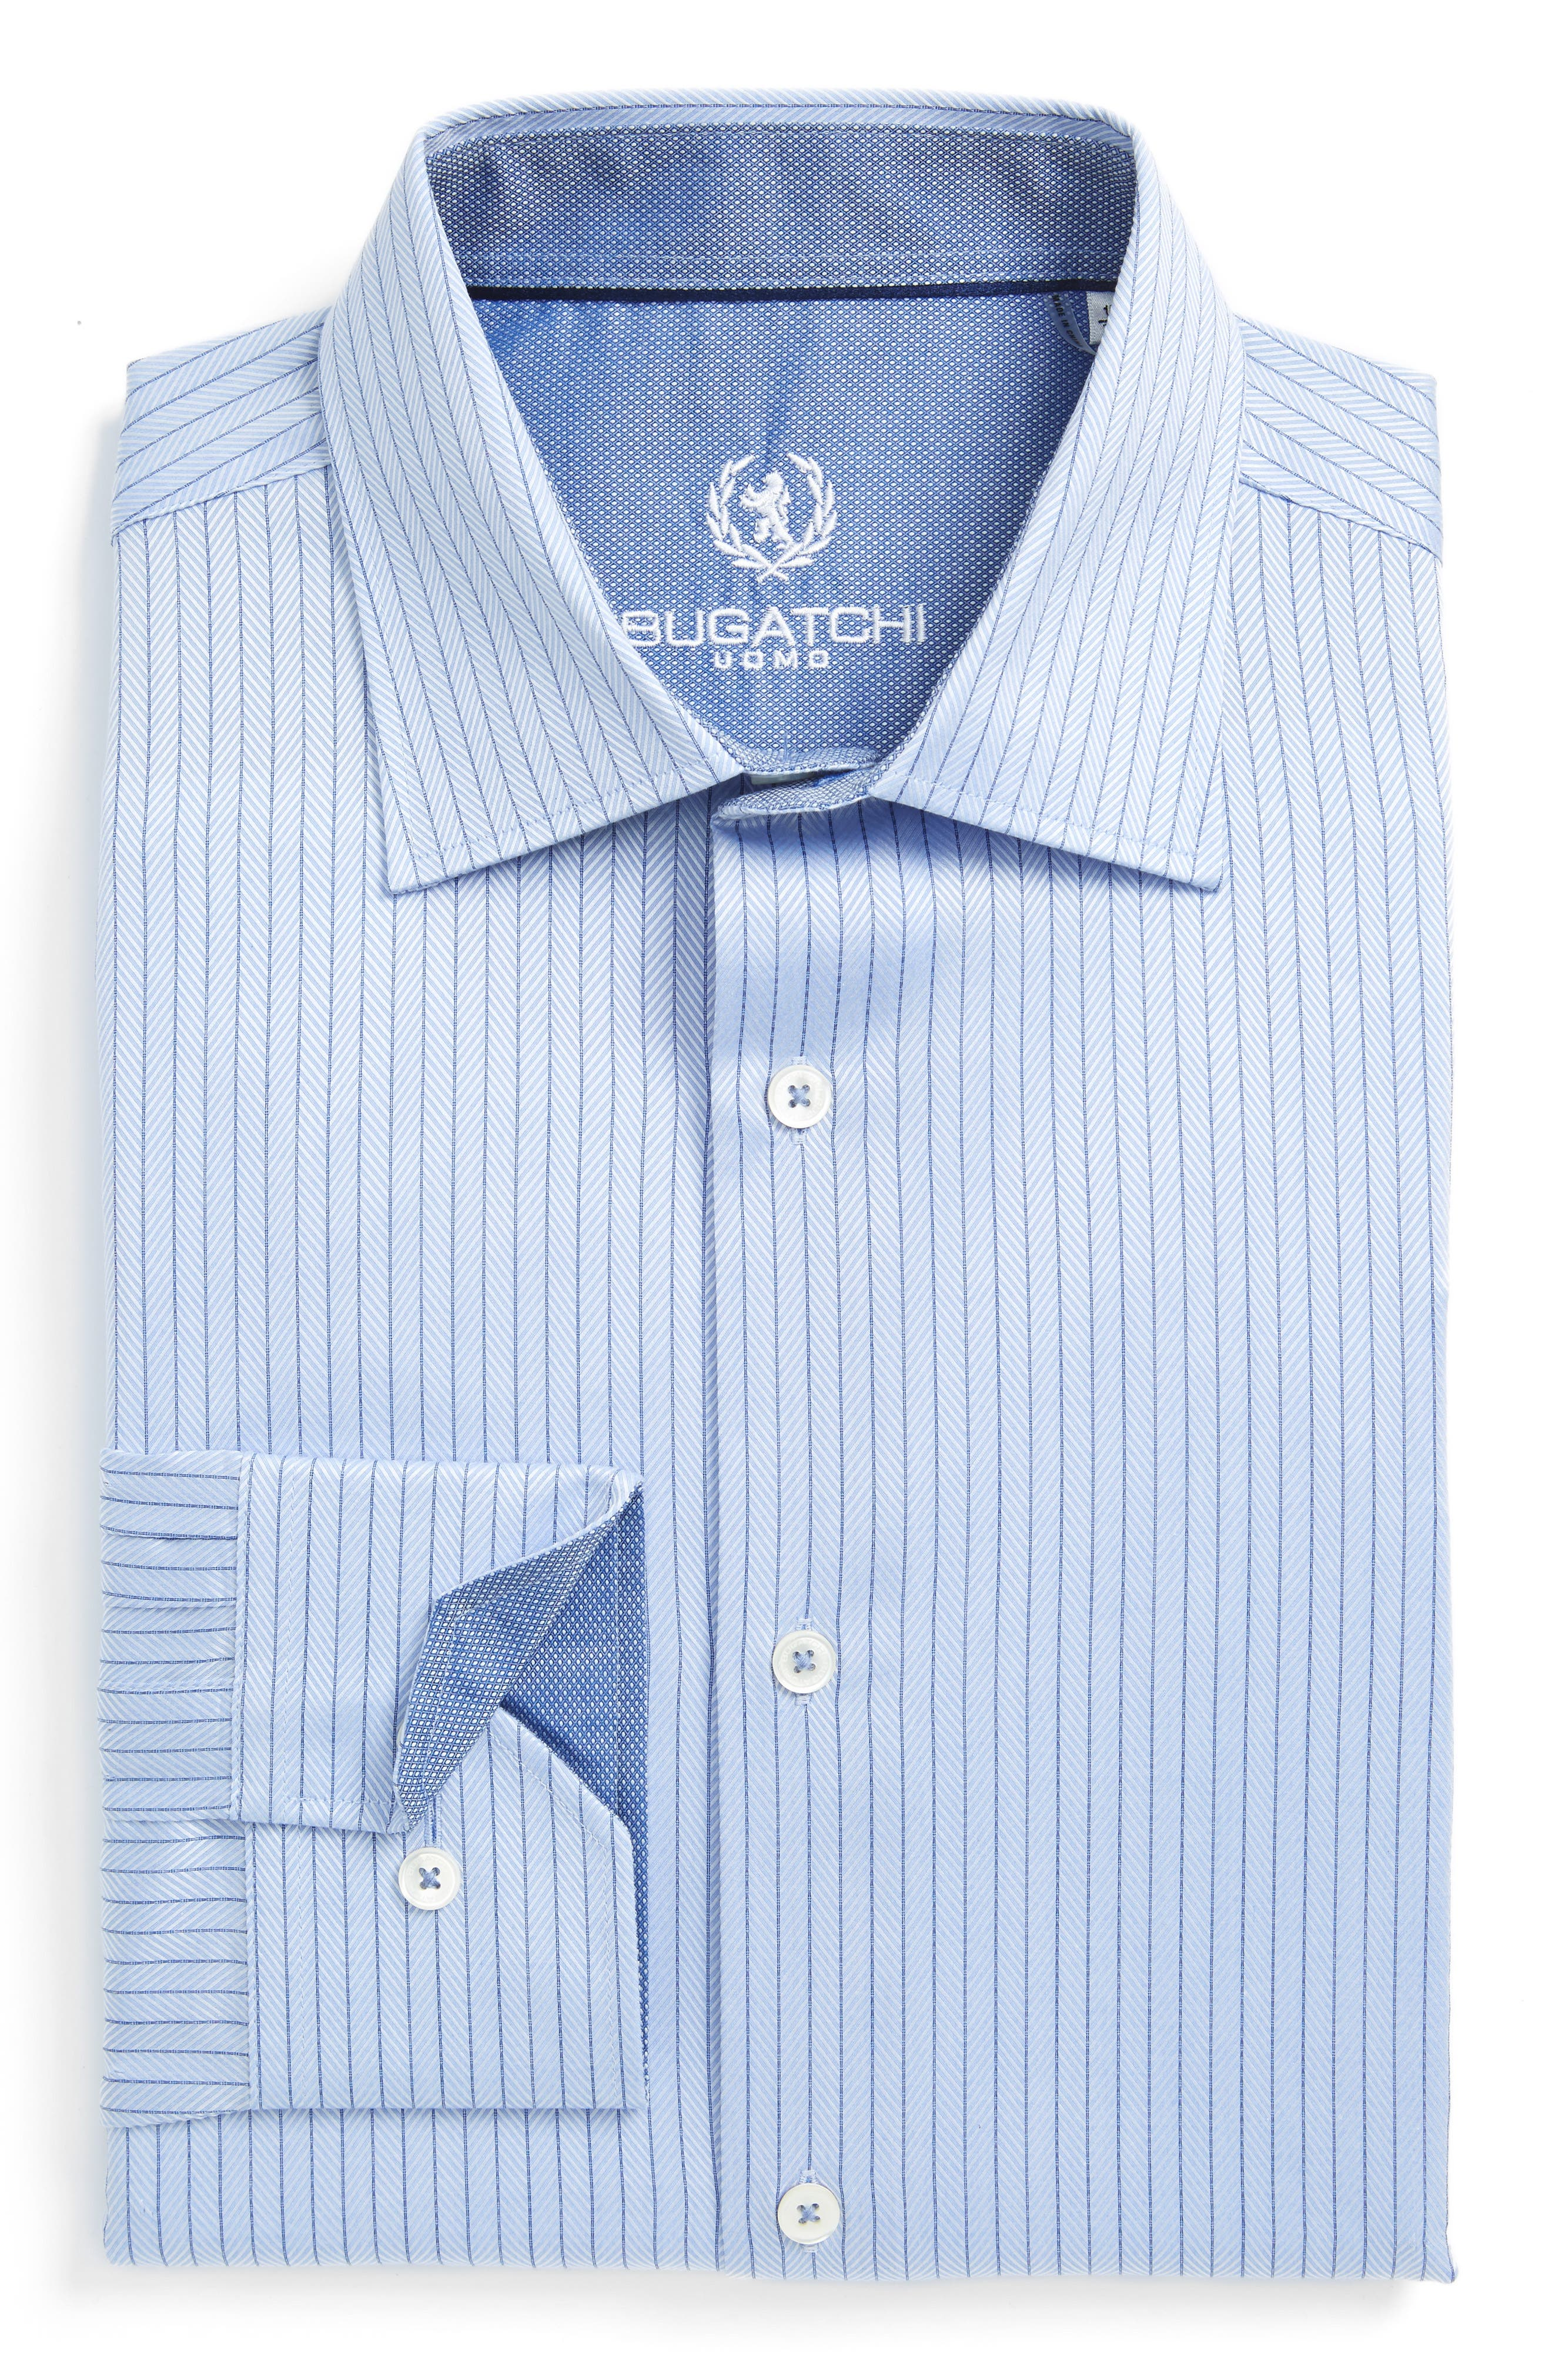 Alternate Image 1 Selected - Bugatchi Trim Fit Herringbone Dress Shirt